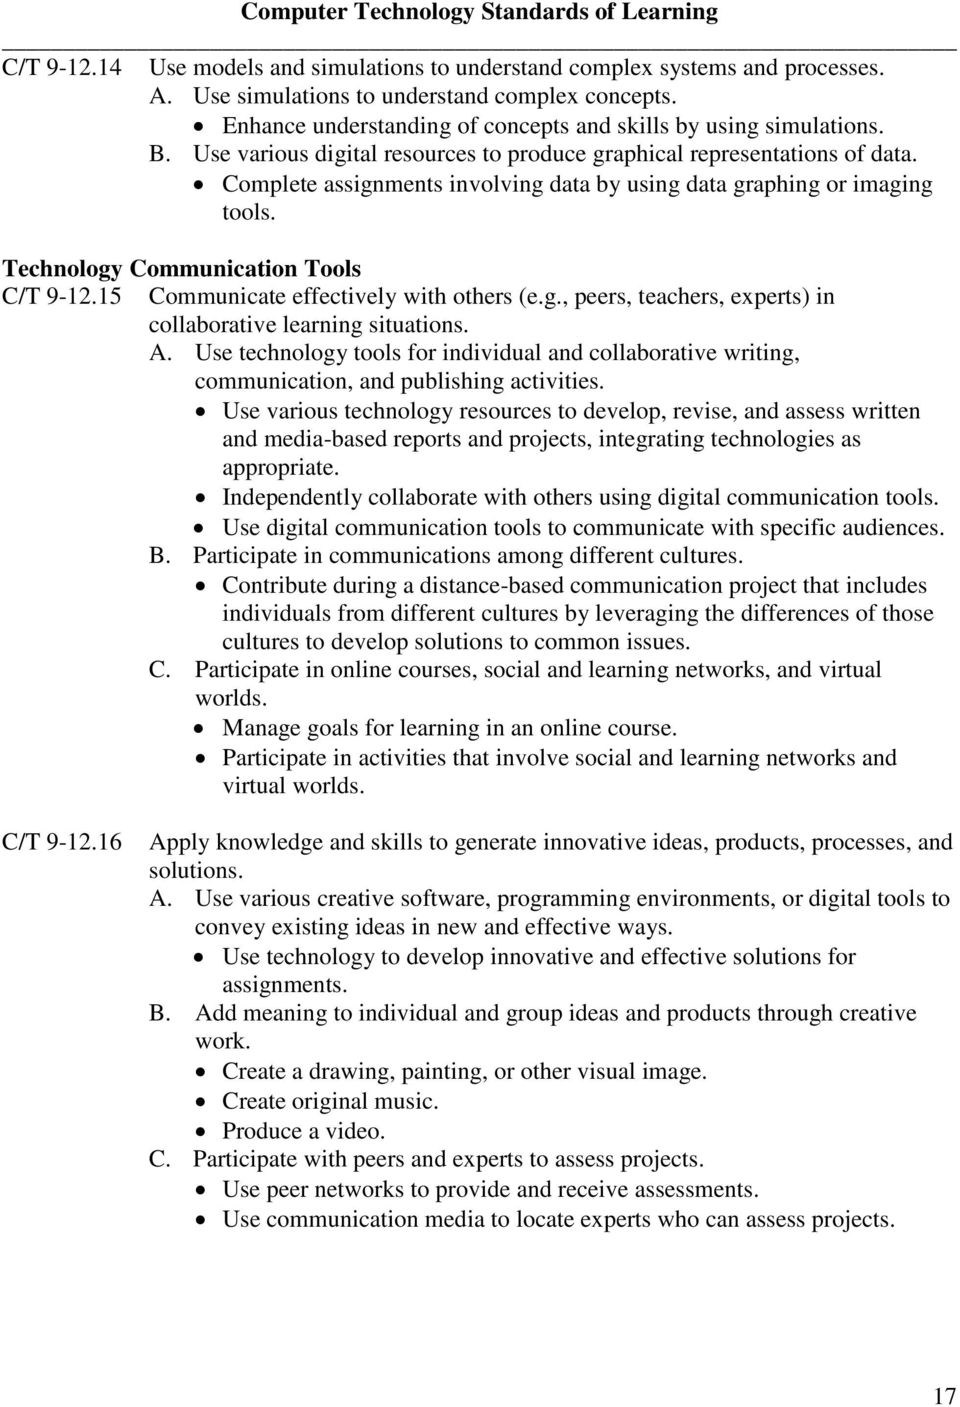 Complete assignments involving data by using data graphing or imaging tools. Technology Communication Tools C/T 9-12.15 Communicate effectively with others (e.g., peers, teachers, experts) in collaborative learning situations.